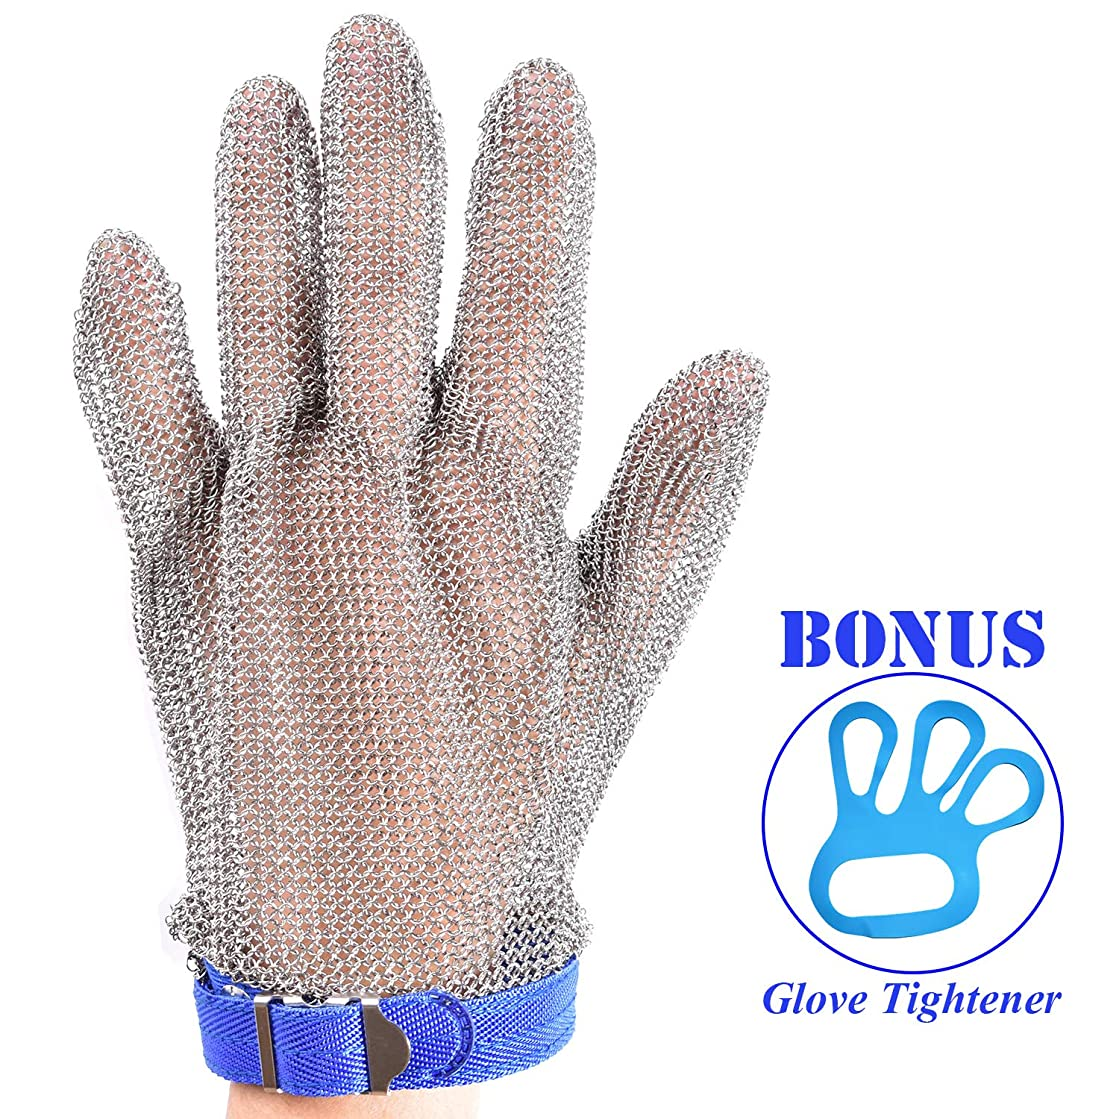 Stainless Steel Mesh Cut-resistant Glove - Chain Mail Glove for Hand Protective, Safety Glove for Home Kitchen, Butcher, Oyster, Garment. Fish Worker (Large)